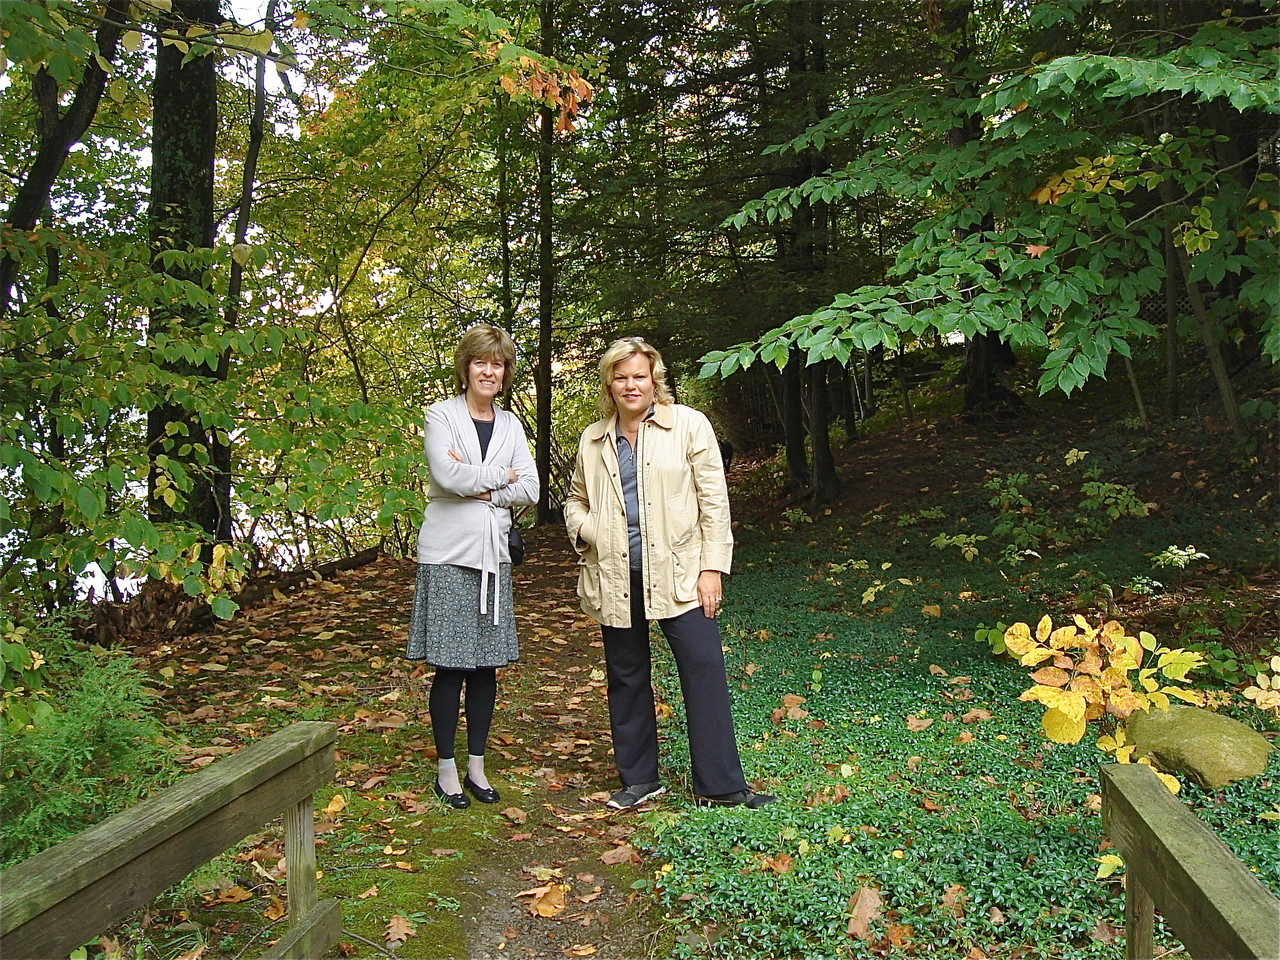 Nancy Hynes & Celeste, Oct. 2012